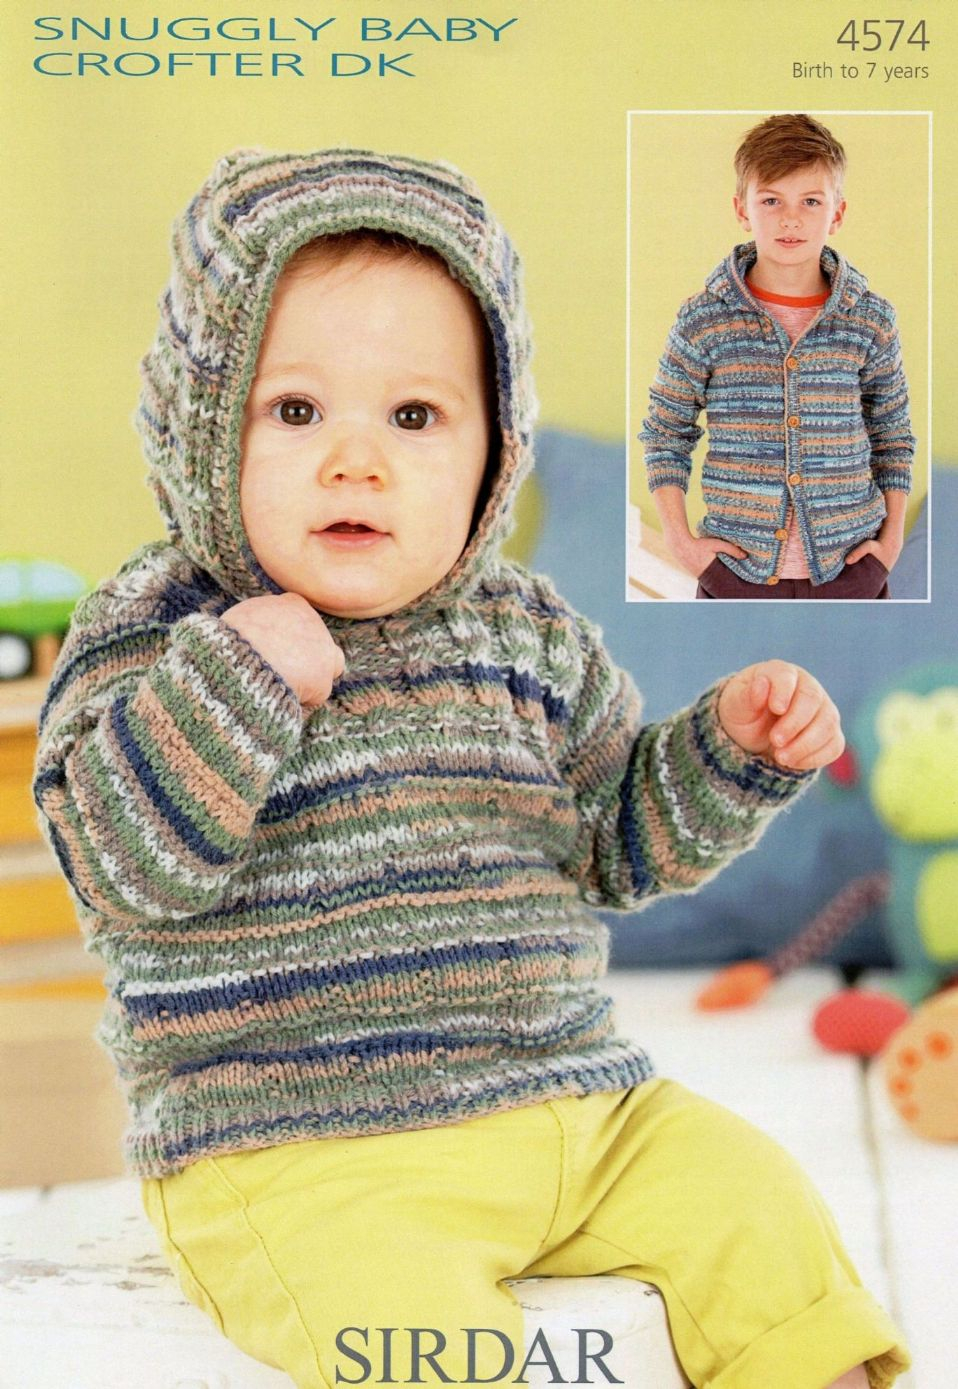 Sweater Jacket Knitting Pattern 4574 Sirdar Snuggly Ba Crofter Dk Sweater Jacket Knitting Pattern To Fit 0 To 7 Years